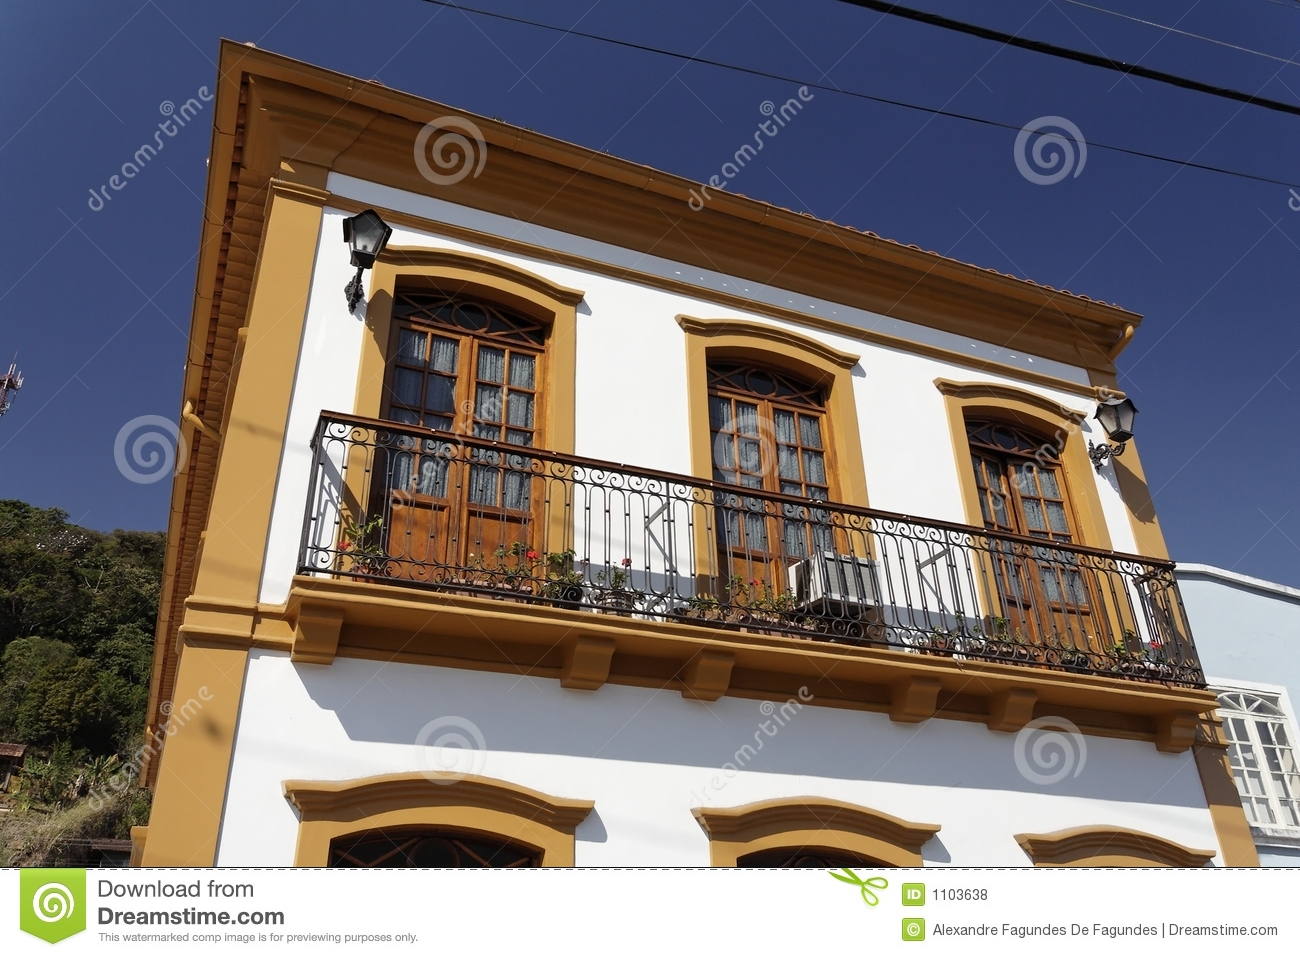 Balcony of a building in sao francisco do sul royalty free for Balcony 412 sul